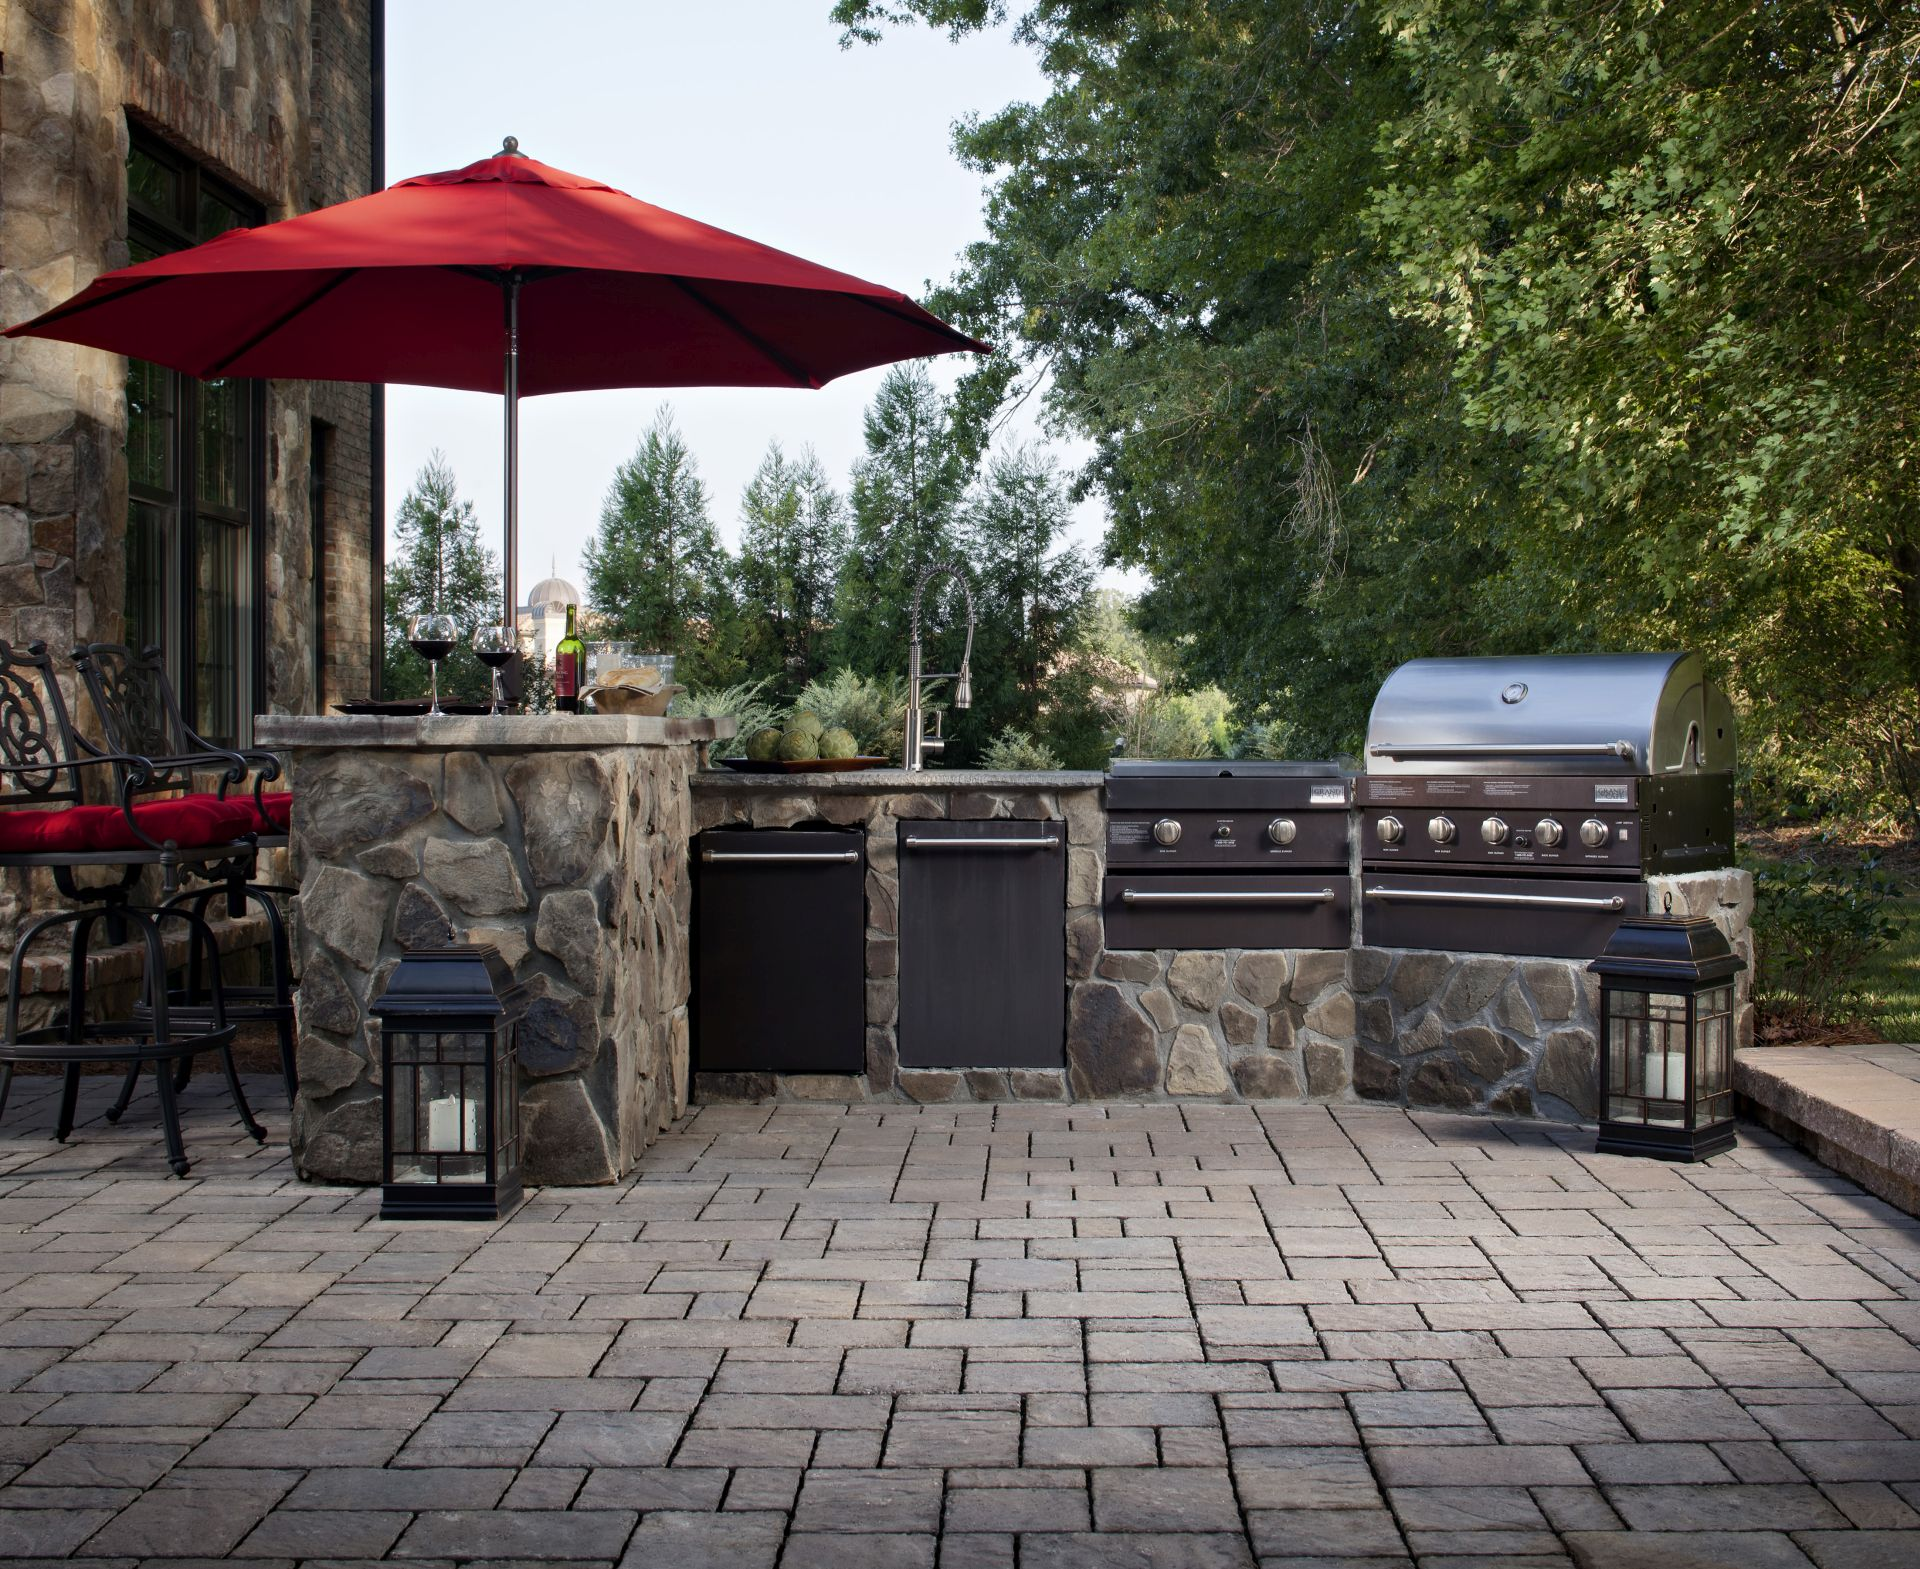 Paving Stone Patio With Outdoor Kitchen